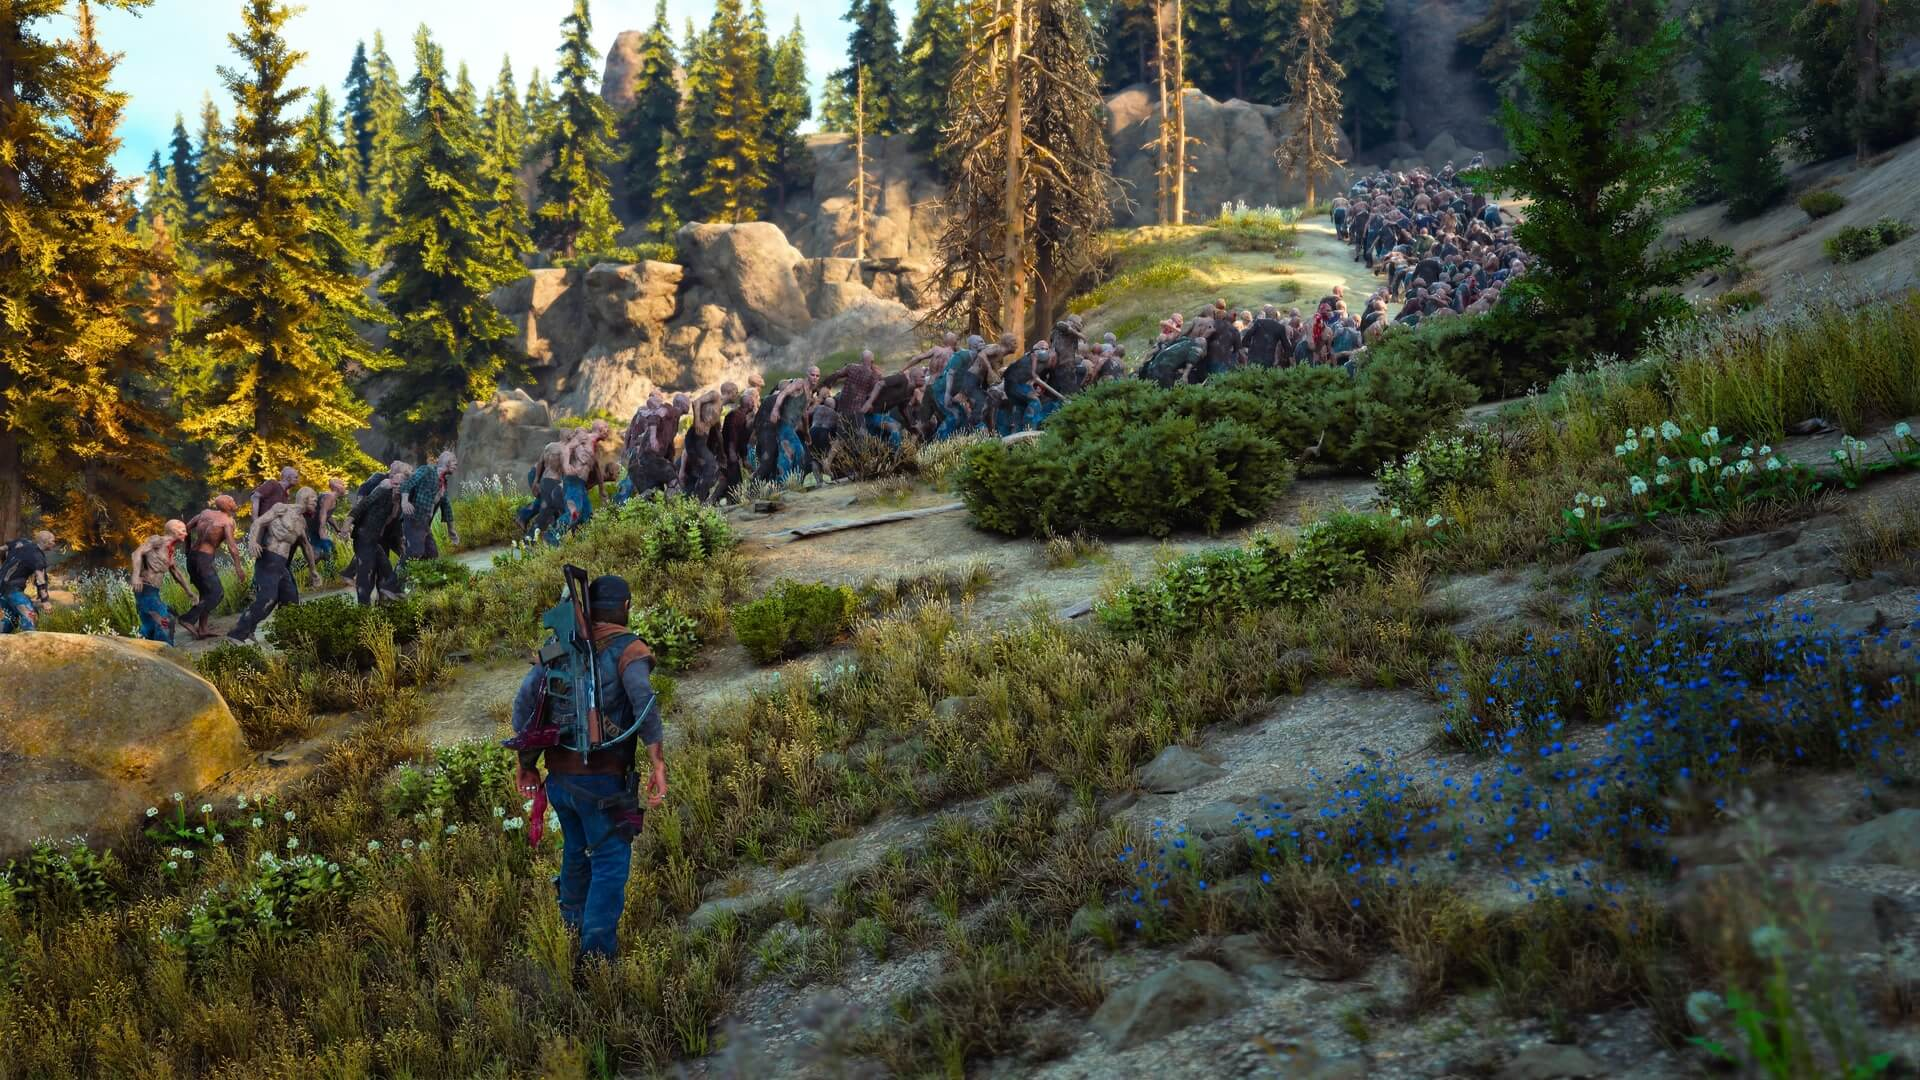 More Games Should Use Days Gone's Trophy Mechanic